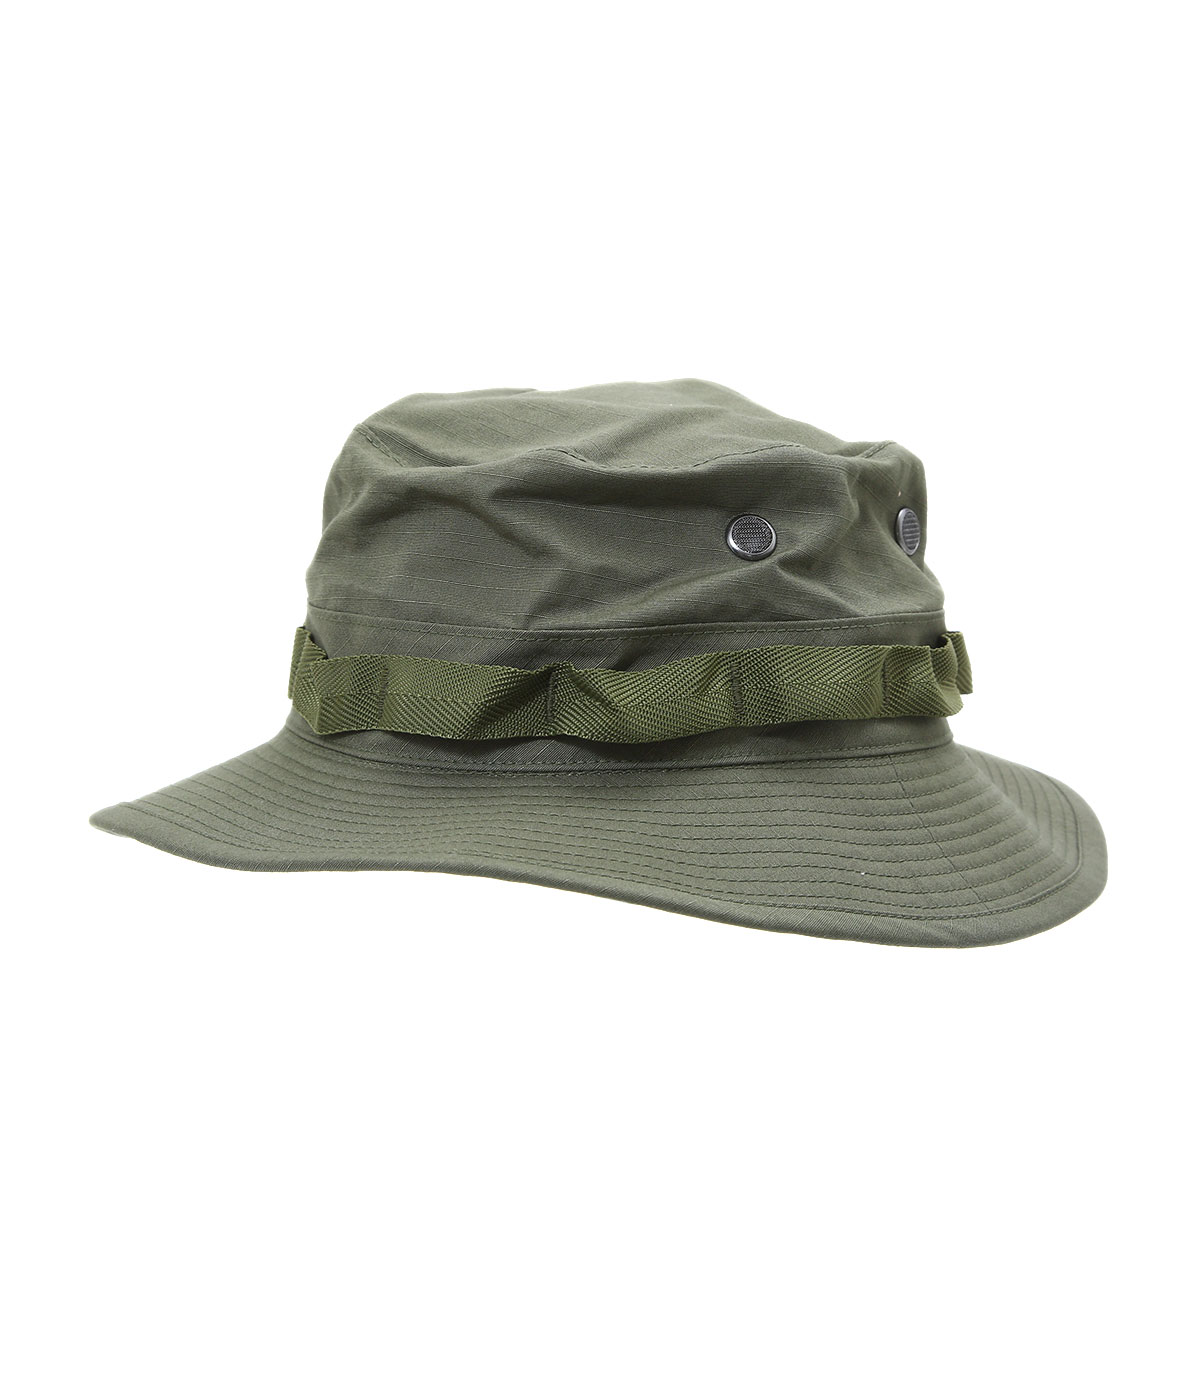 US ARMY JUNGLE HAT